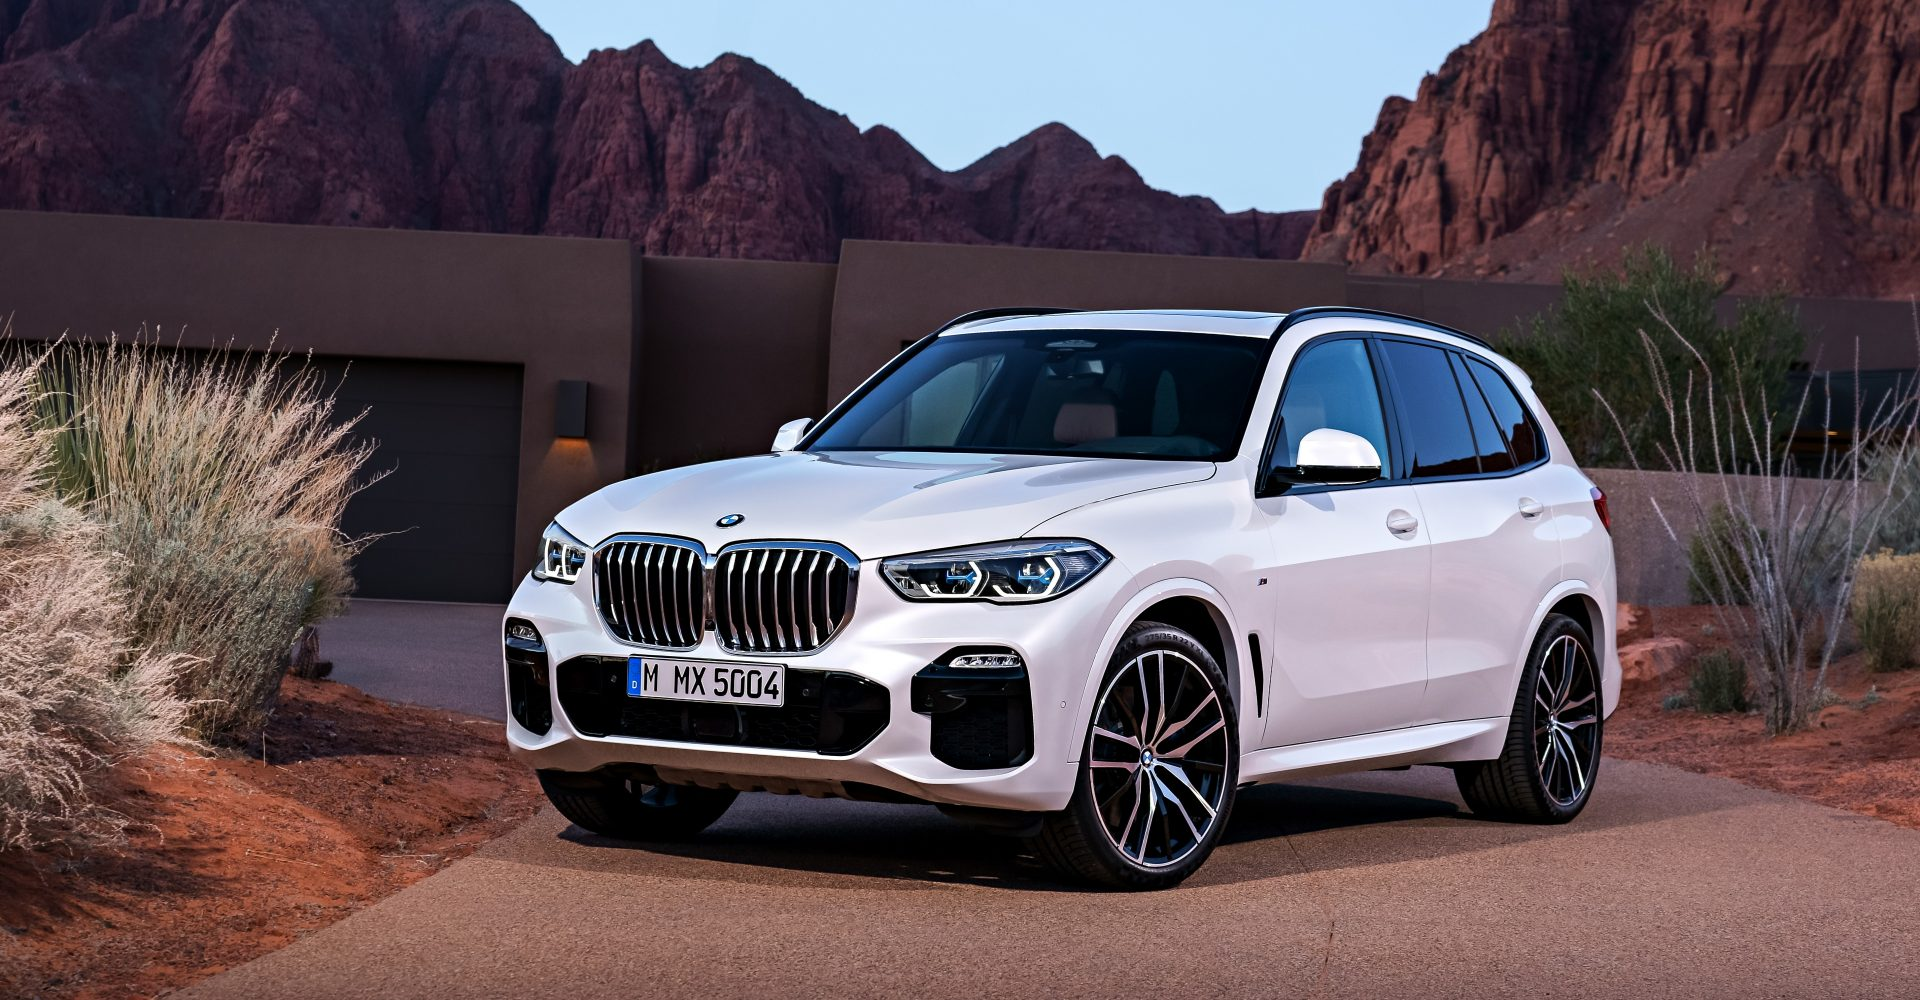 BMW introduces a new mild-hybrid diesel option for its X5 and X6